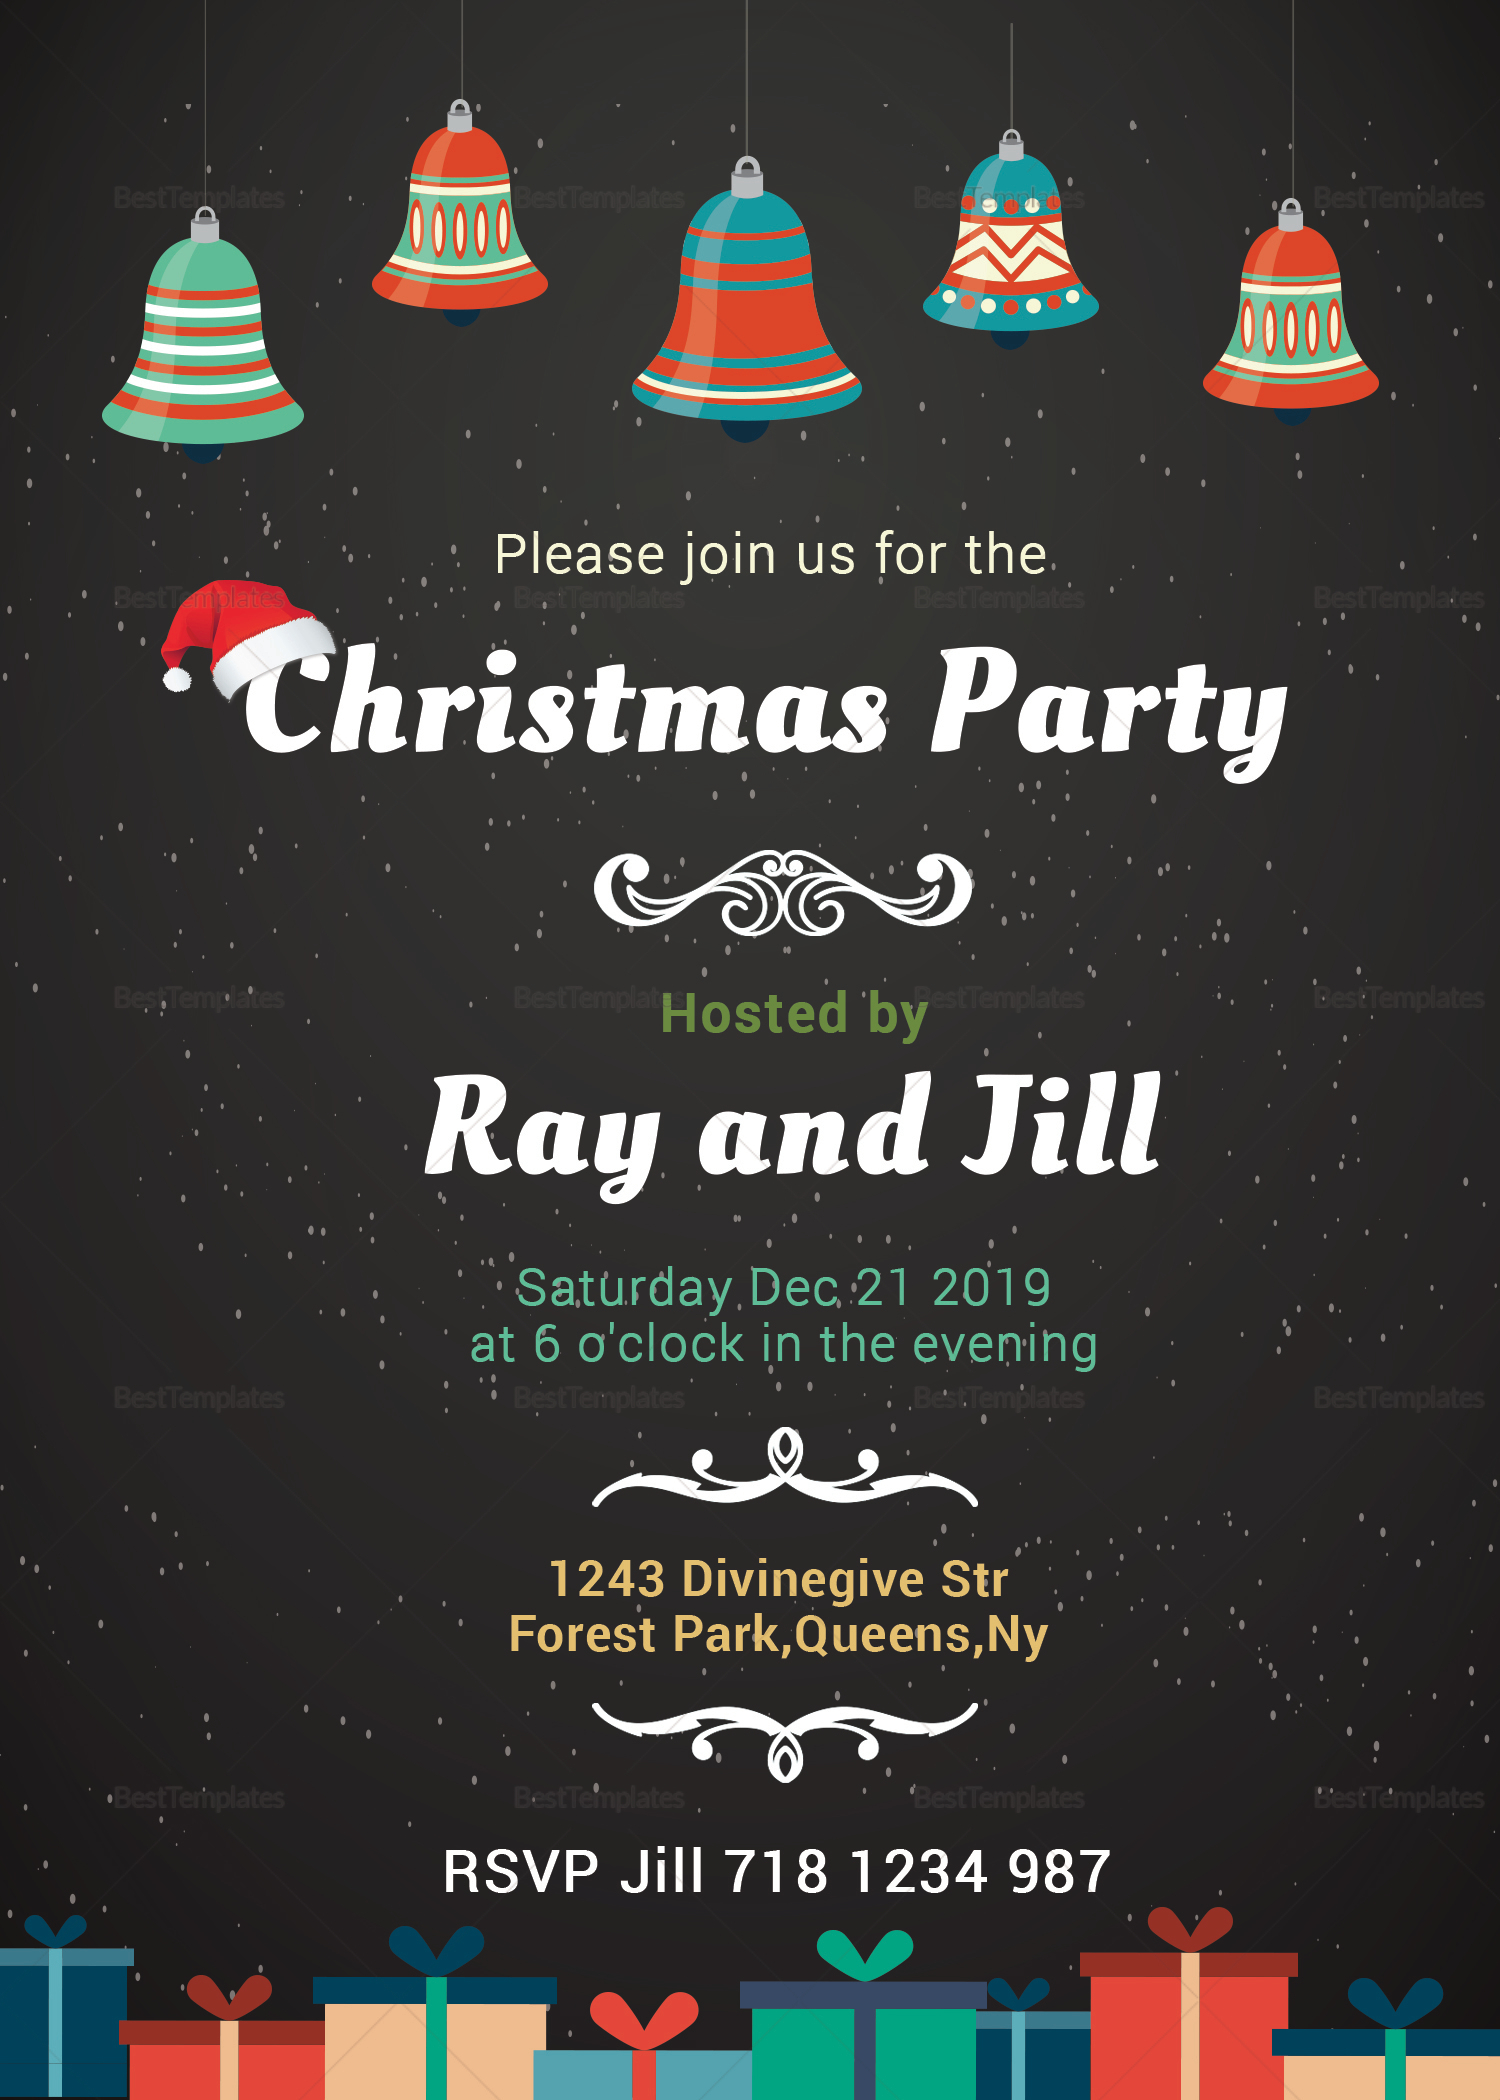 Chalkboard Christmas Invitation Card Design Template